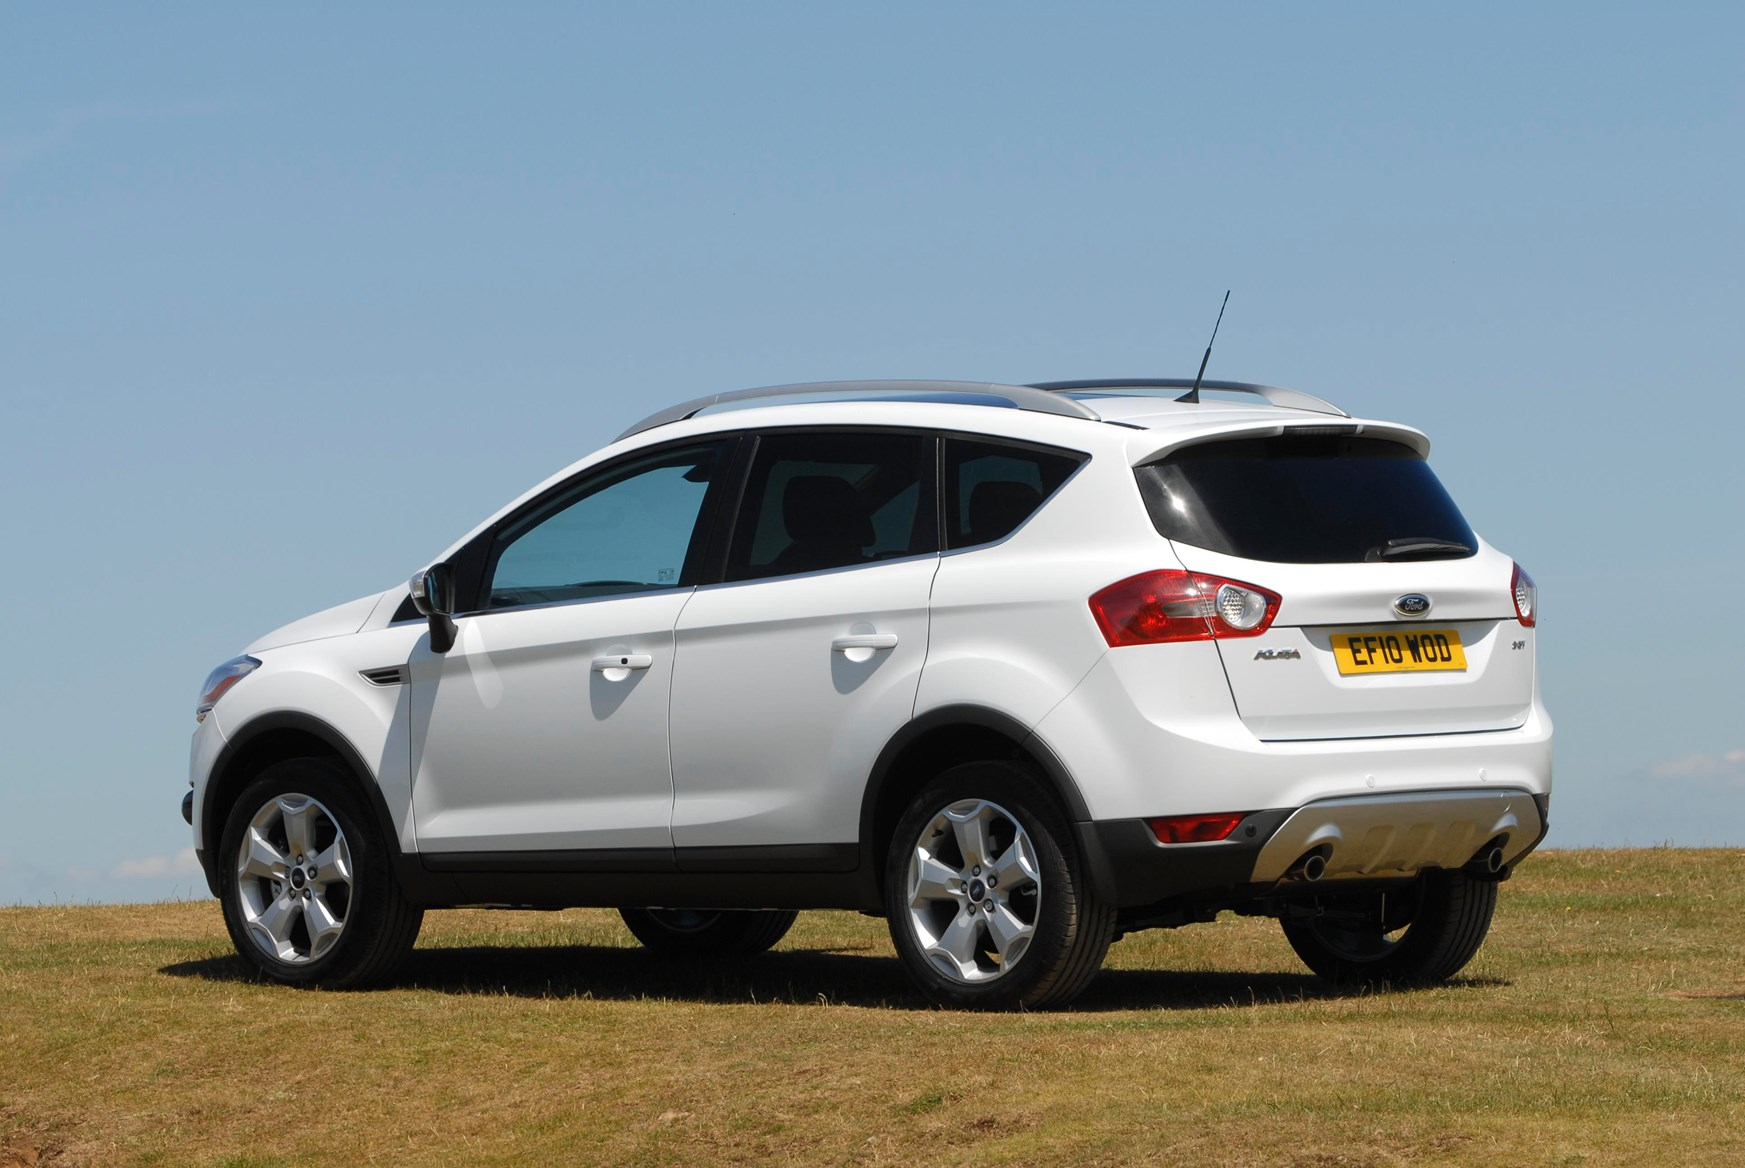 Car Ford Kuga: reviews of owners, specifications and features 1